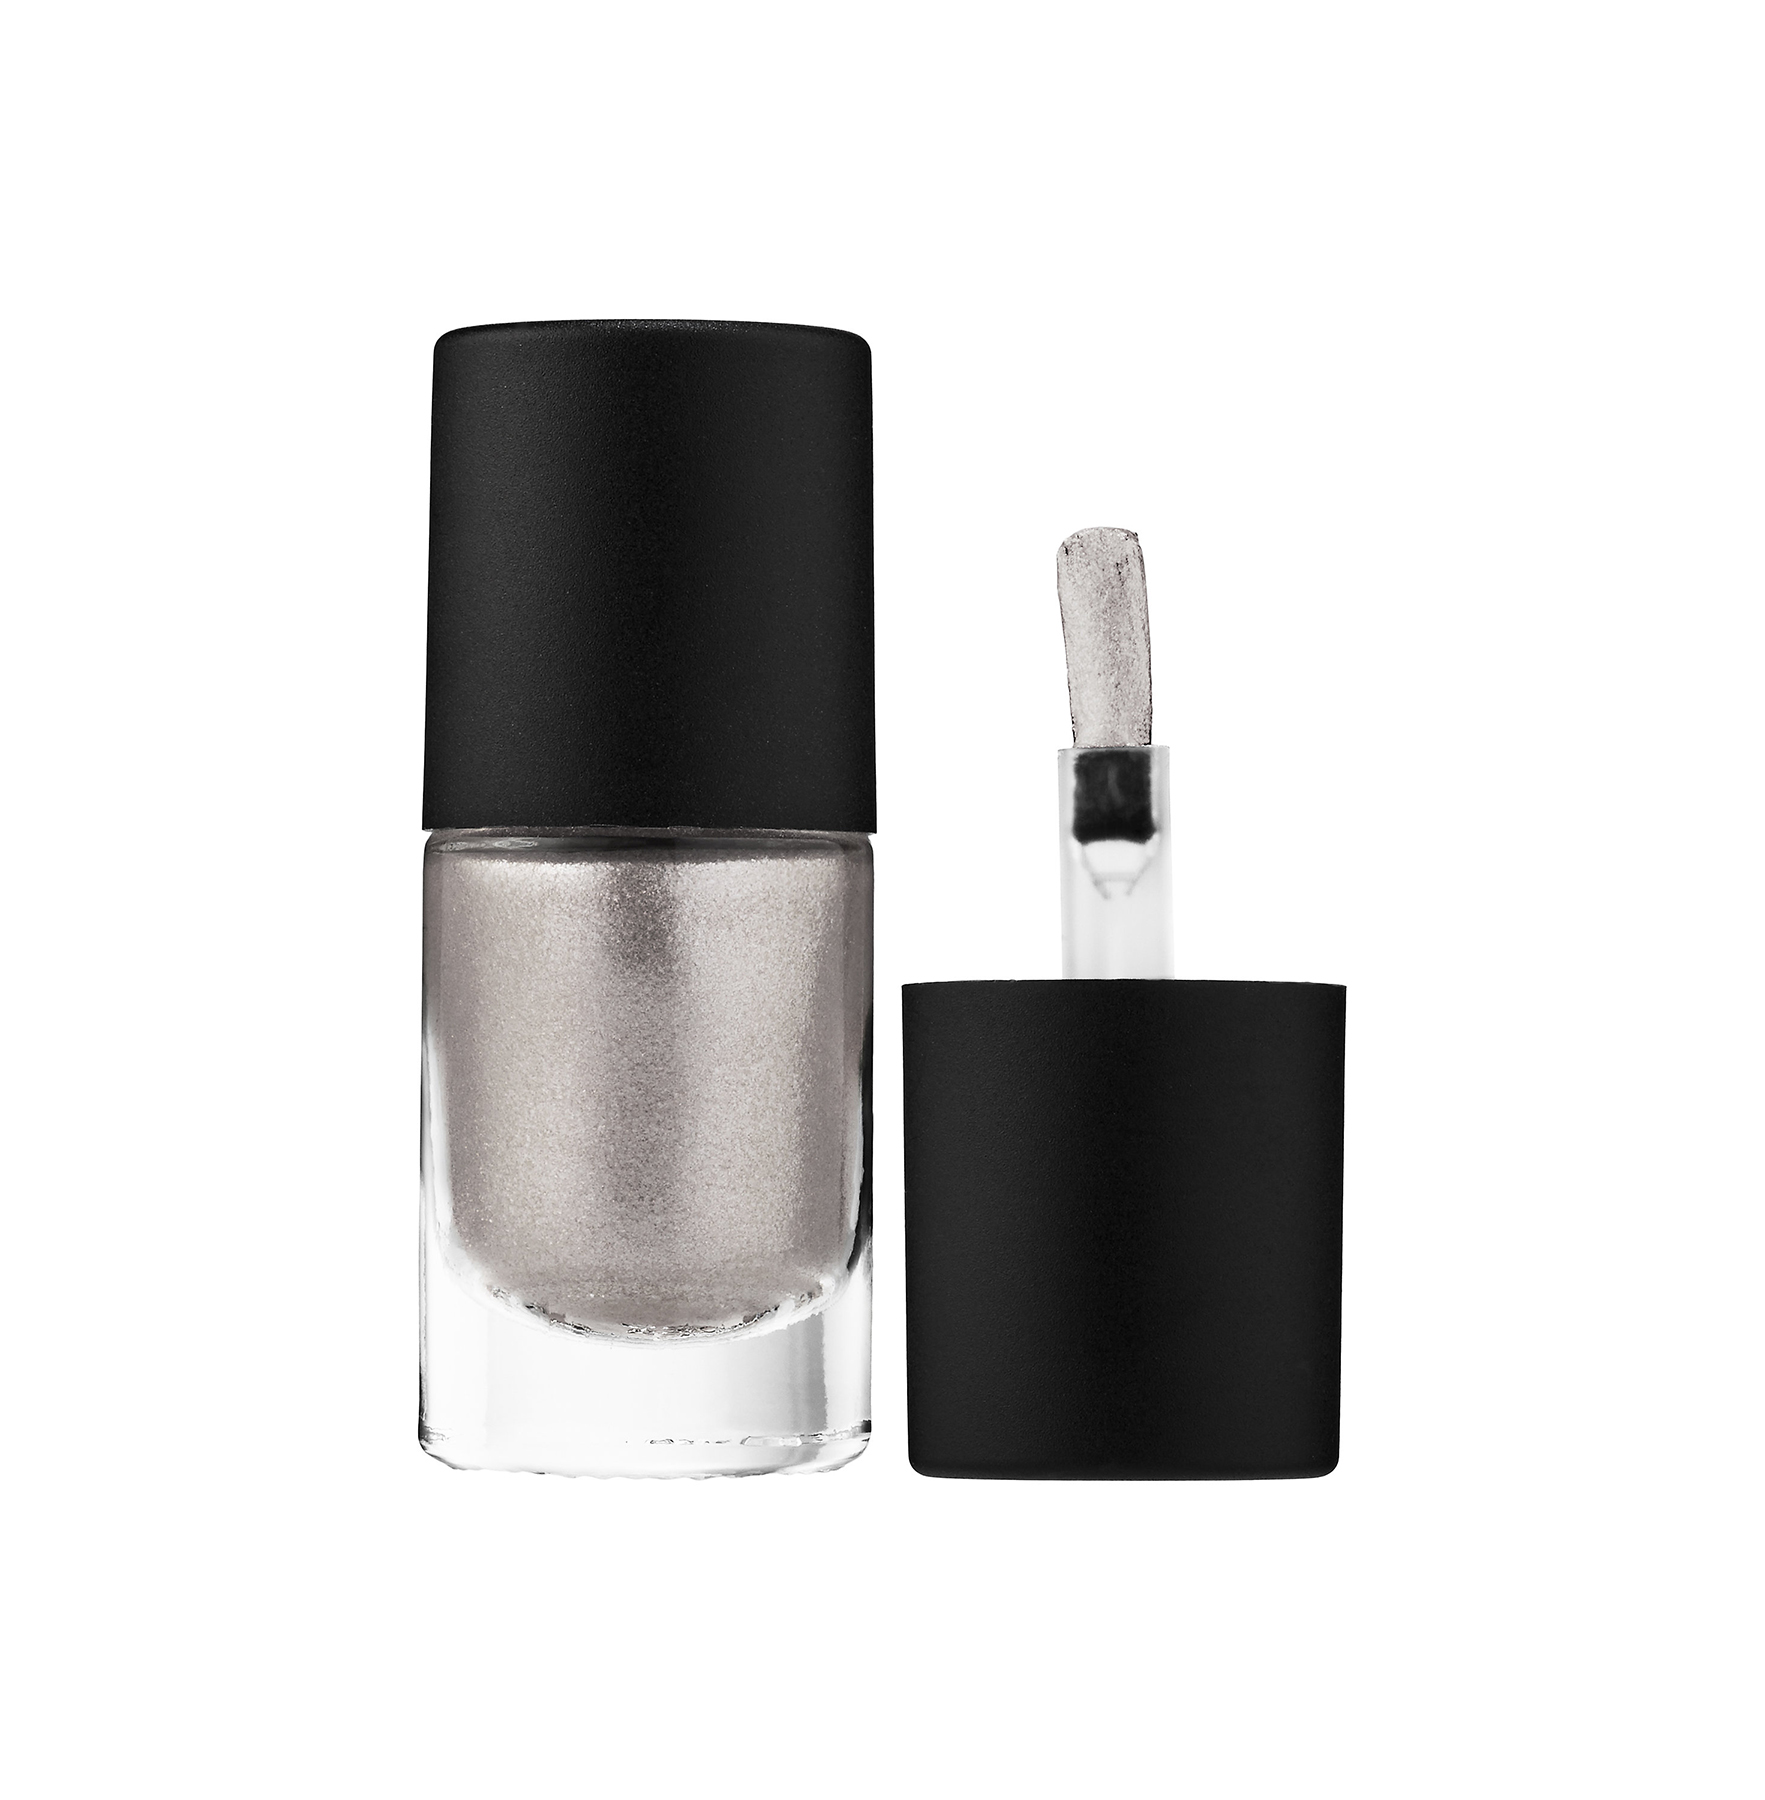 Make Up For Ever Star Lit Liquid in Silver Dust